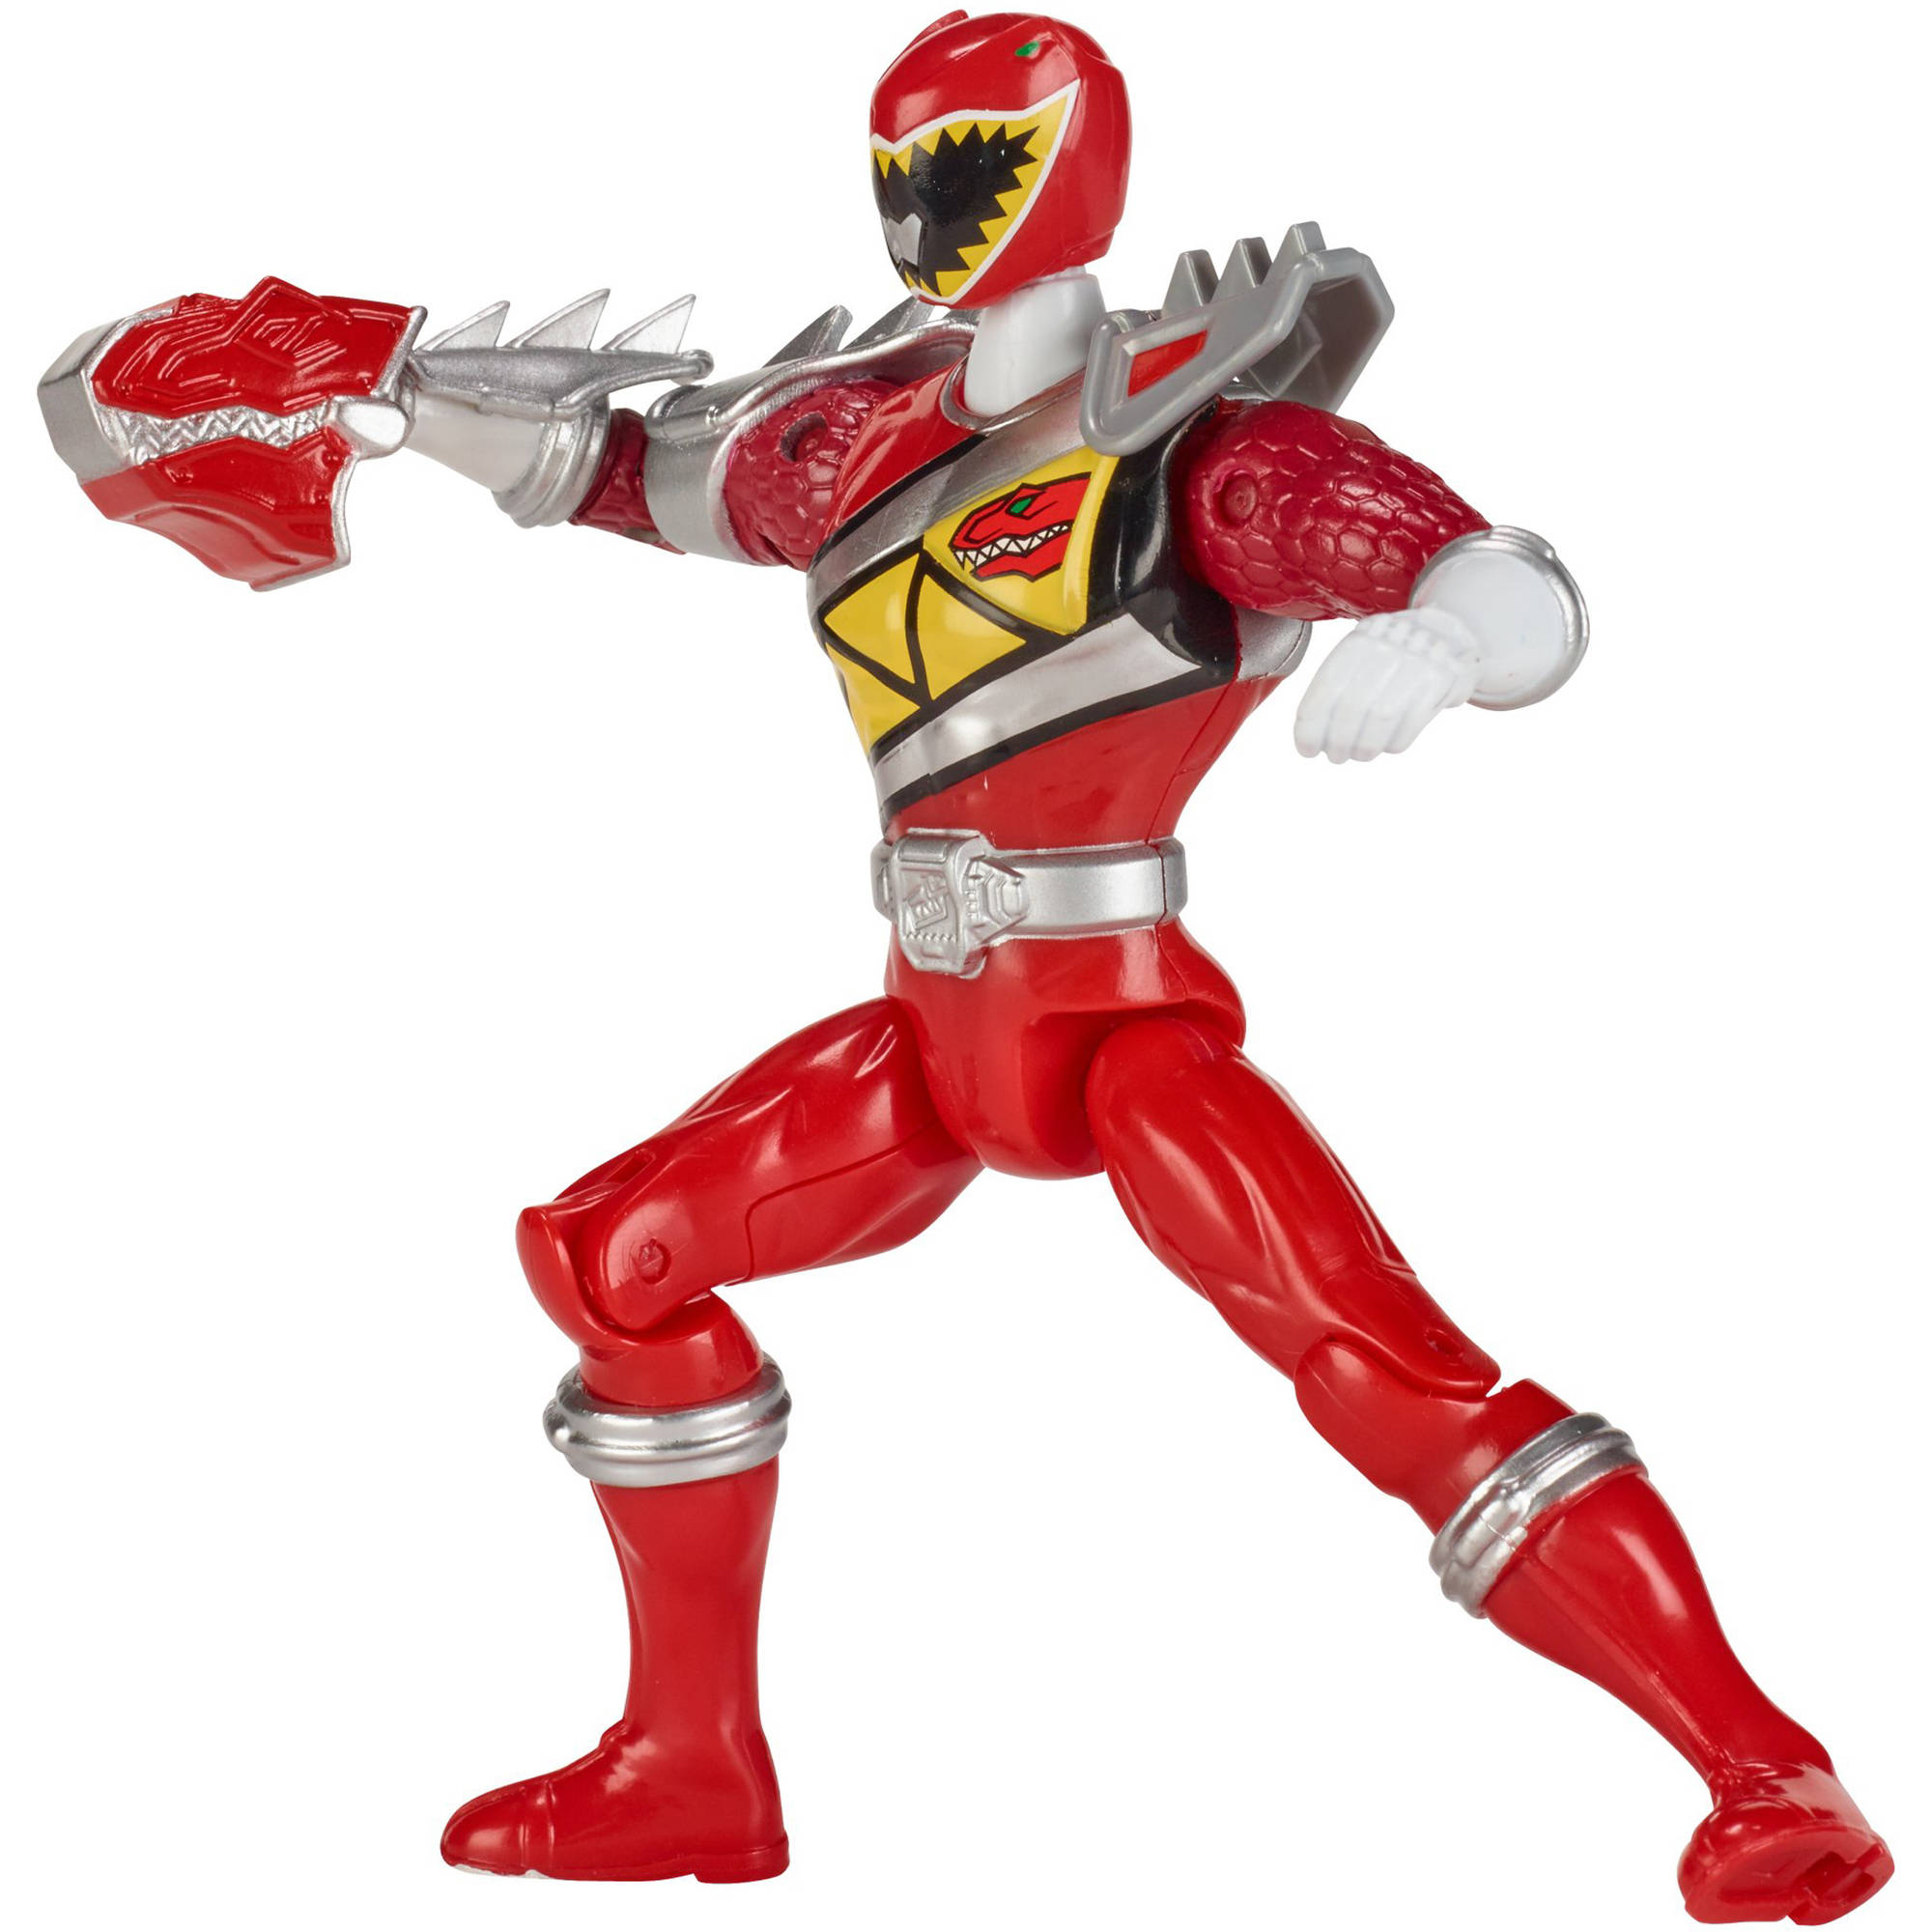 Power Rangers Dino Super Charge Dino Steel Red Ranger